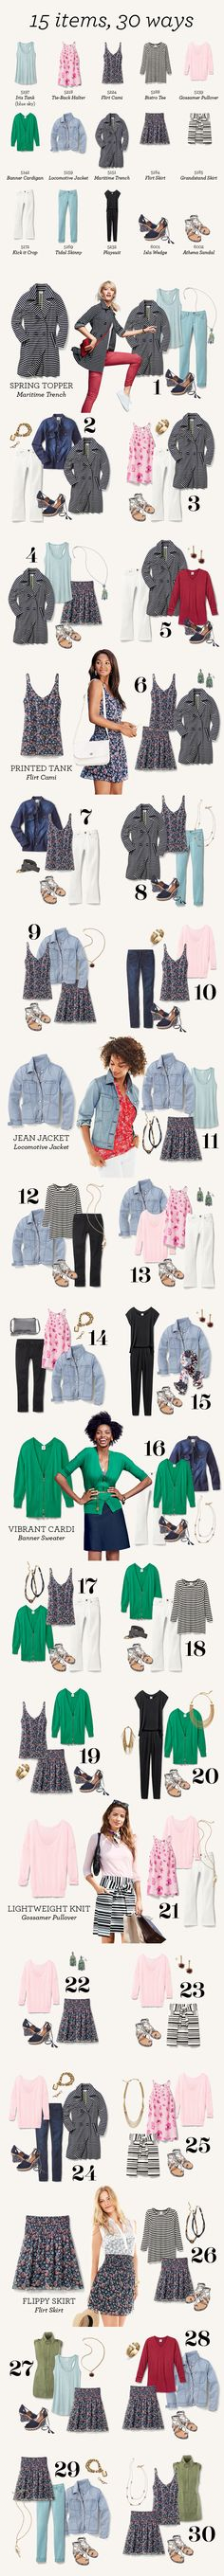 5 wardrobe staples, 15 spring favorites = 30 new looks. Check out this wardrobe capsule for endless outfit ideas!